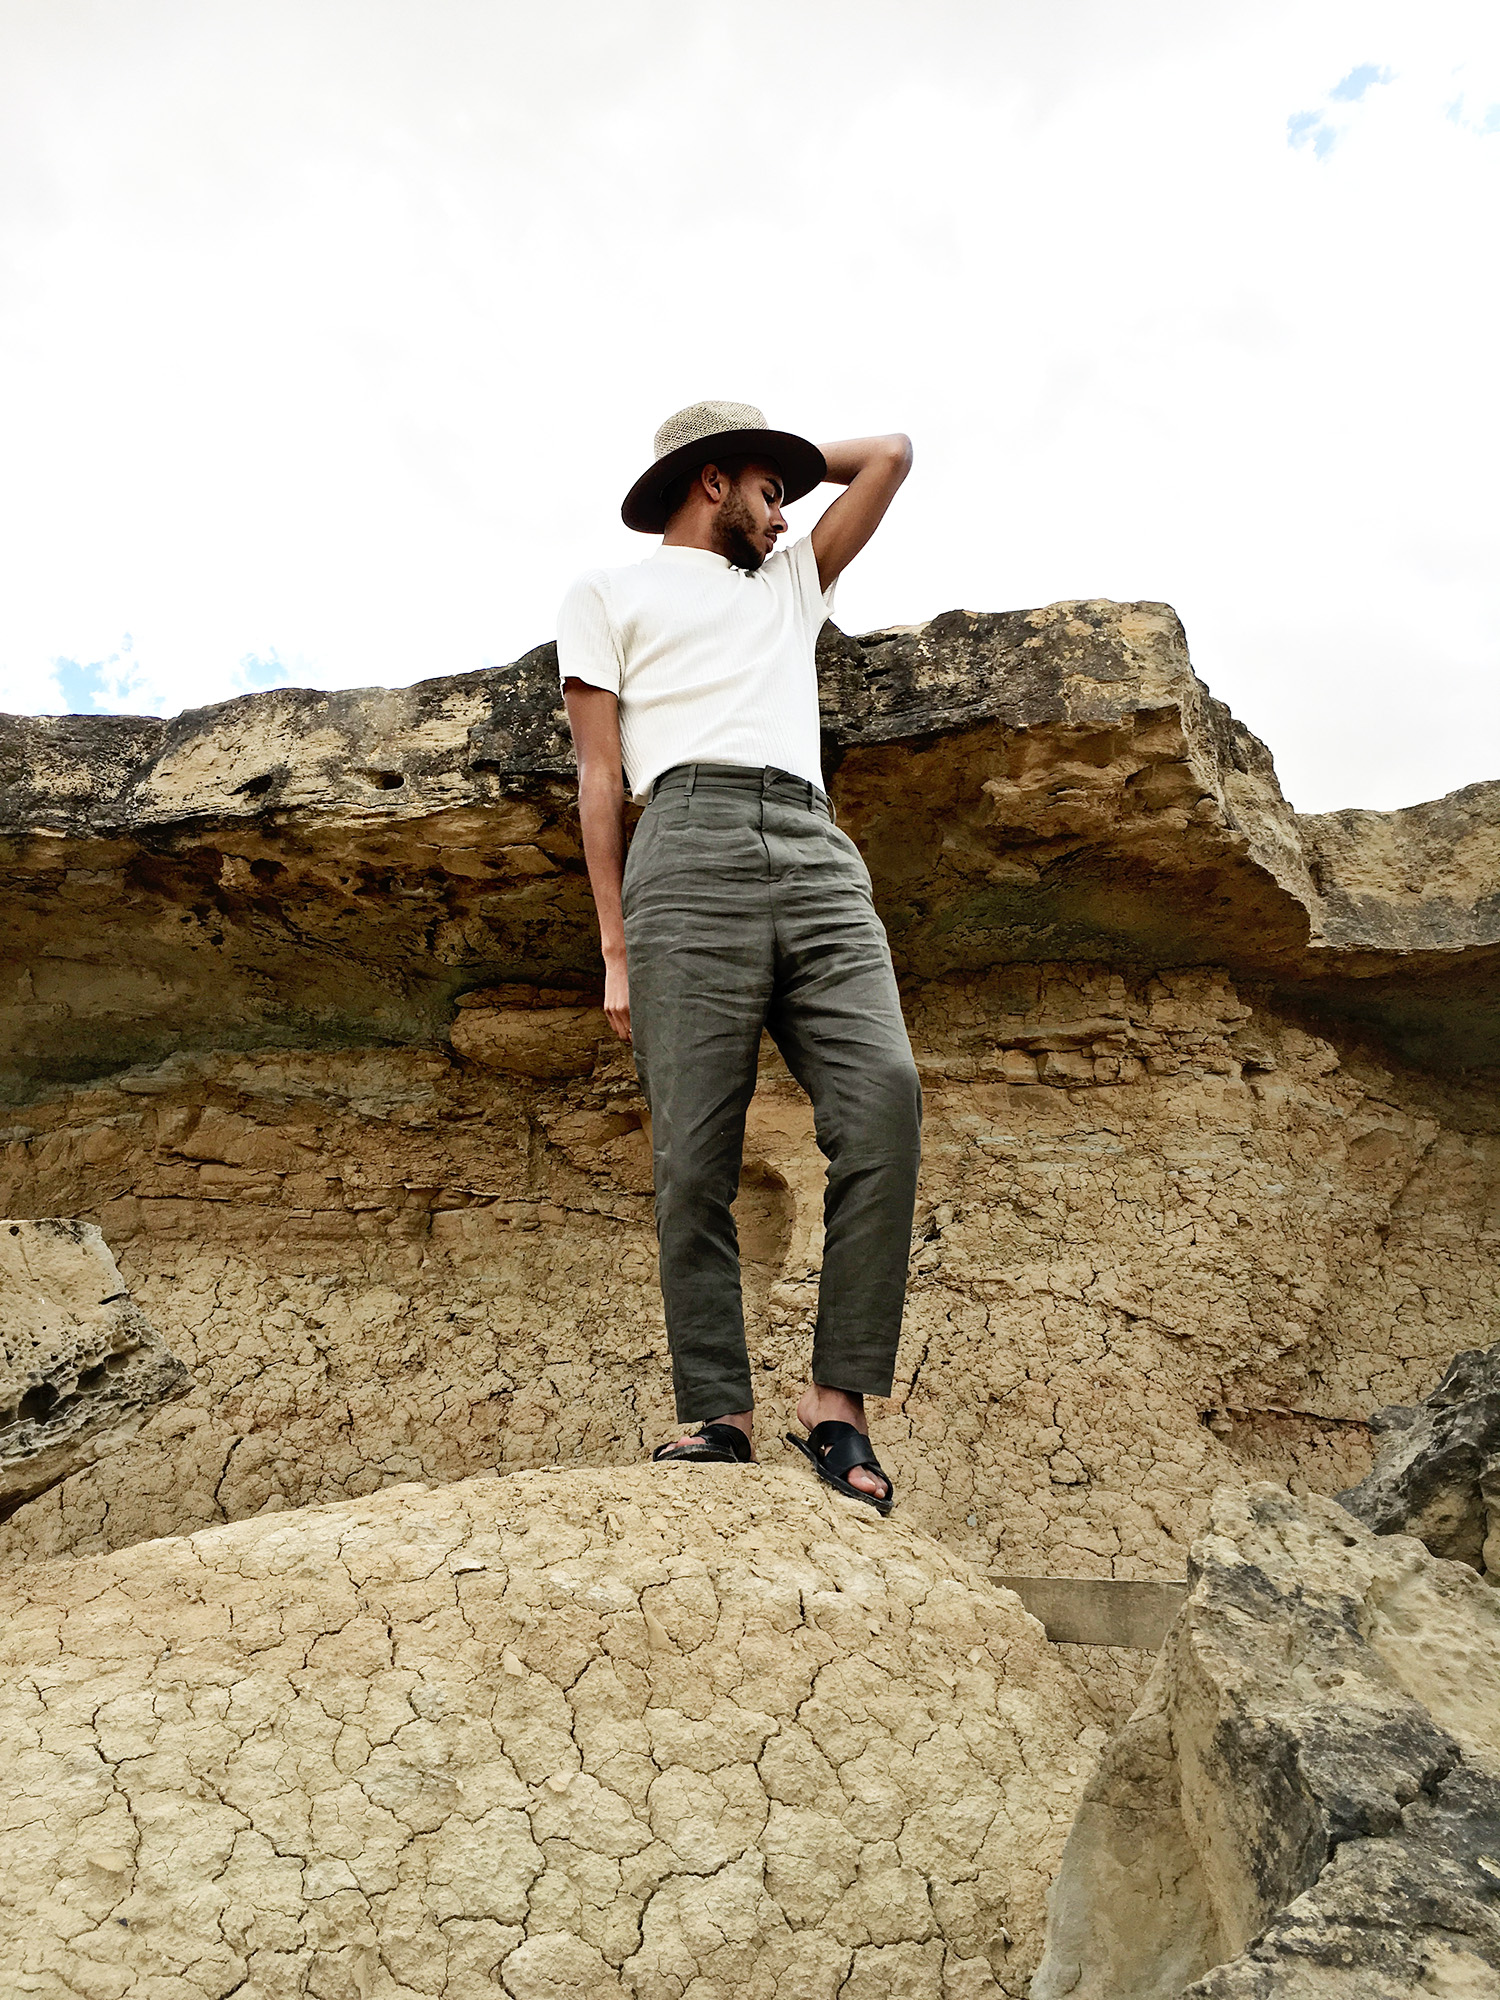 blogueur-homme-mode-menswear-digital-influencer-tudela-bardenas-reales-roadtrip-desert-ootd